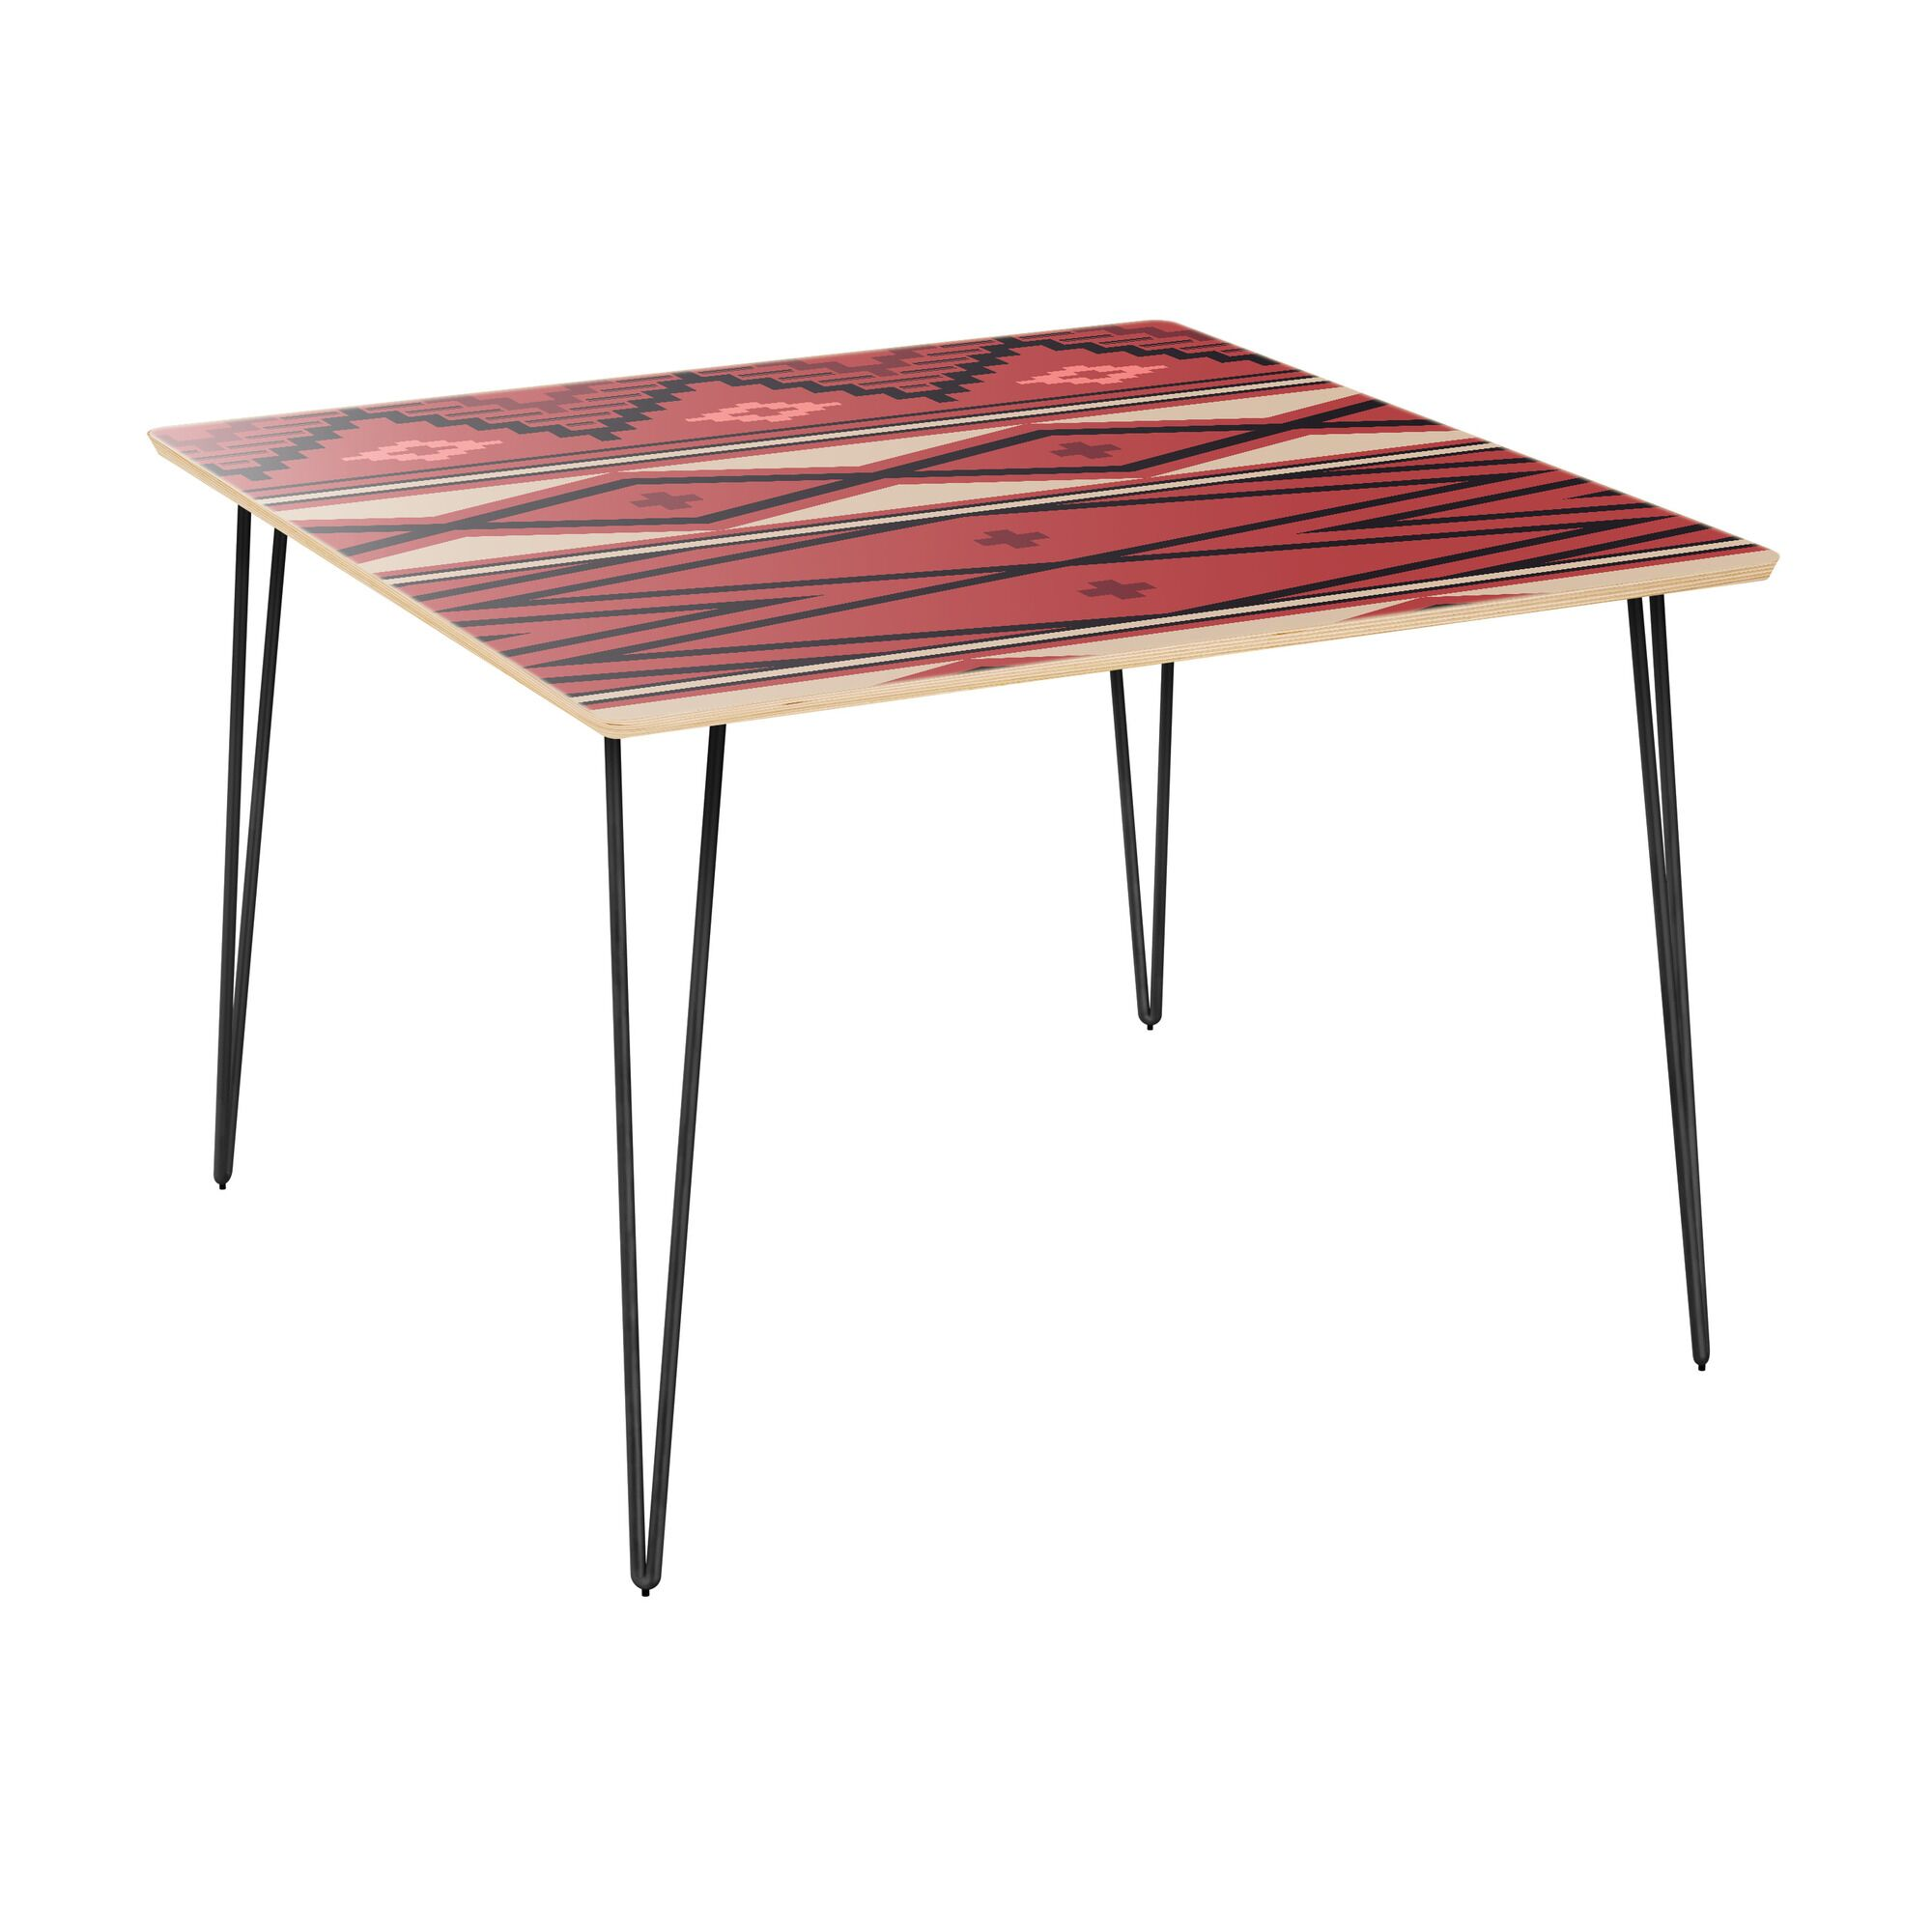 Hummer Dining Table Table Top Boarder Color: Natural, Table Base Color: Black, Table Top Color: Pink/Blue